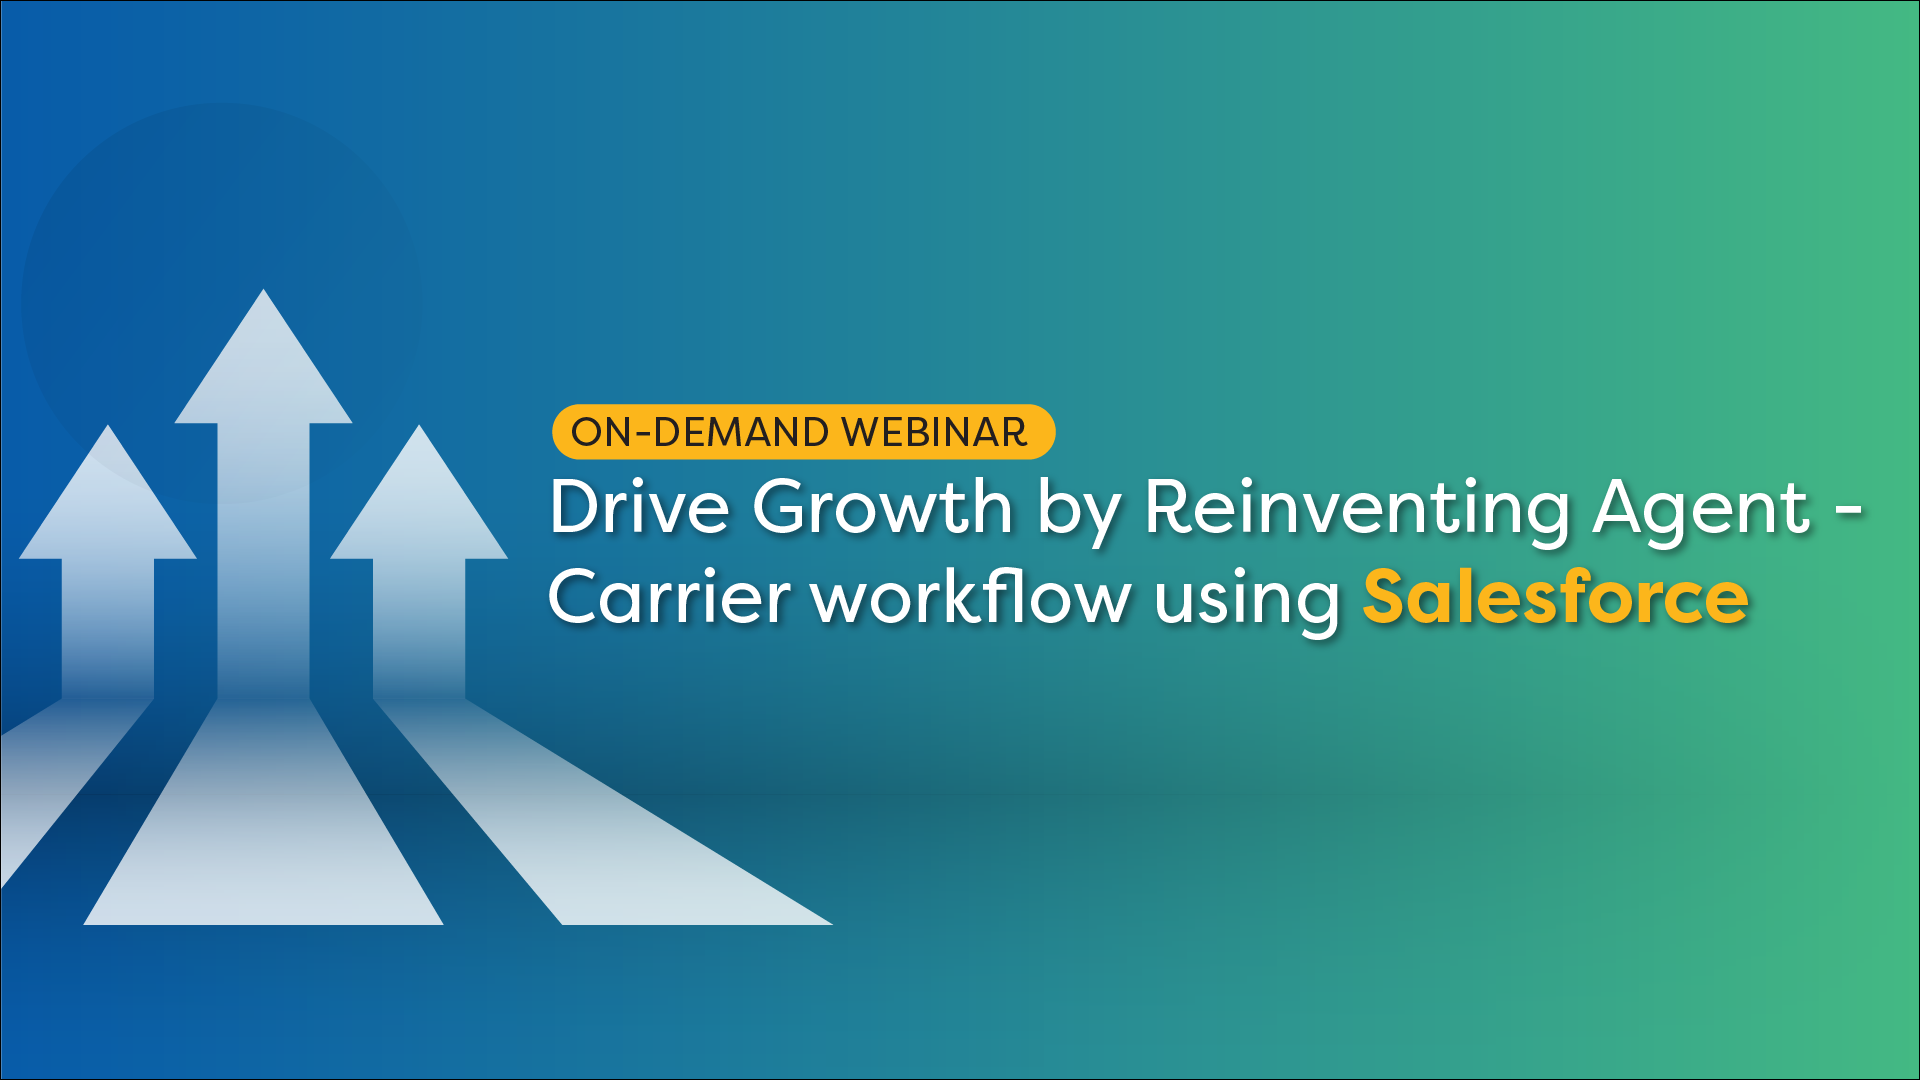 Drive Growth by Reinventing Agent – Carrier workflow using Salesforce